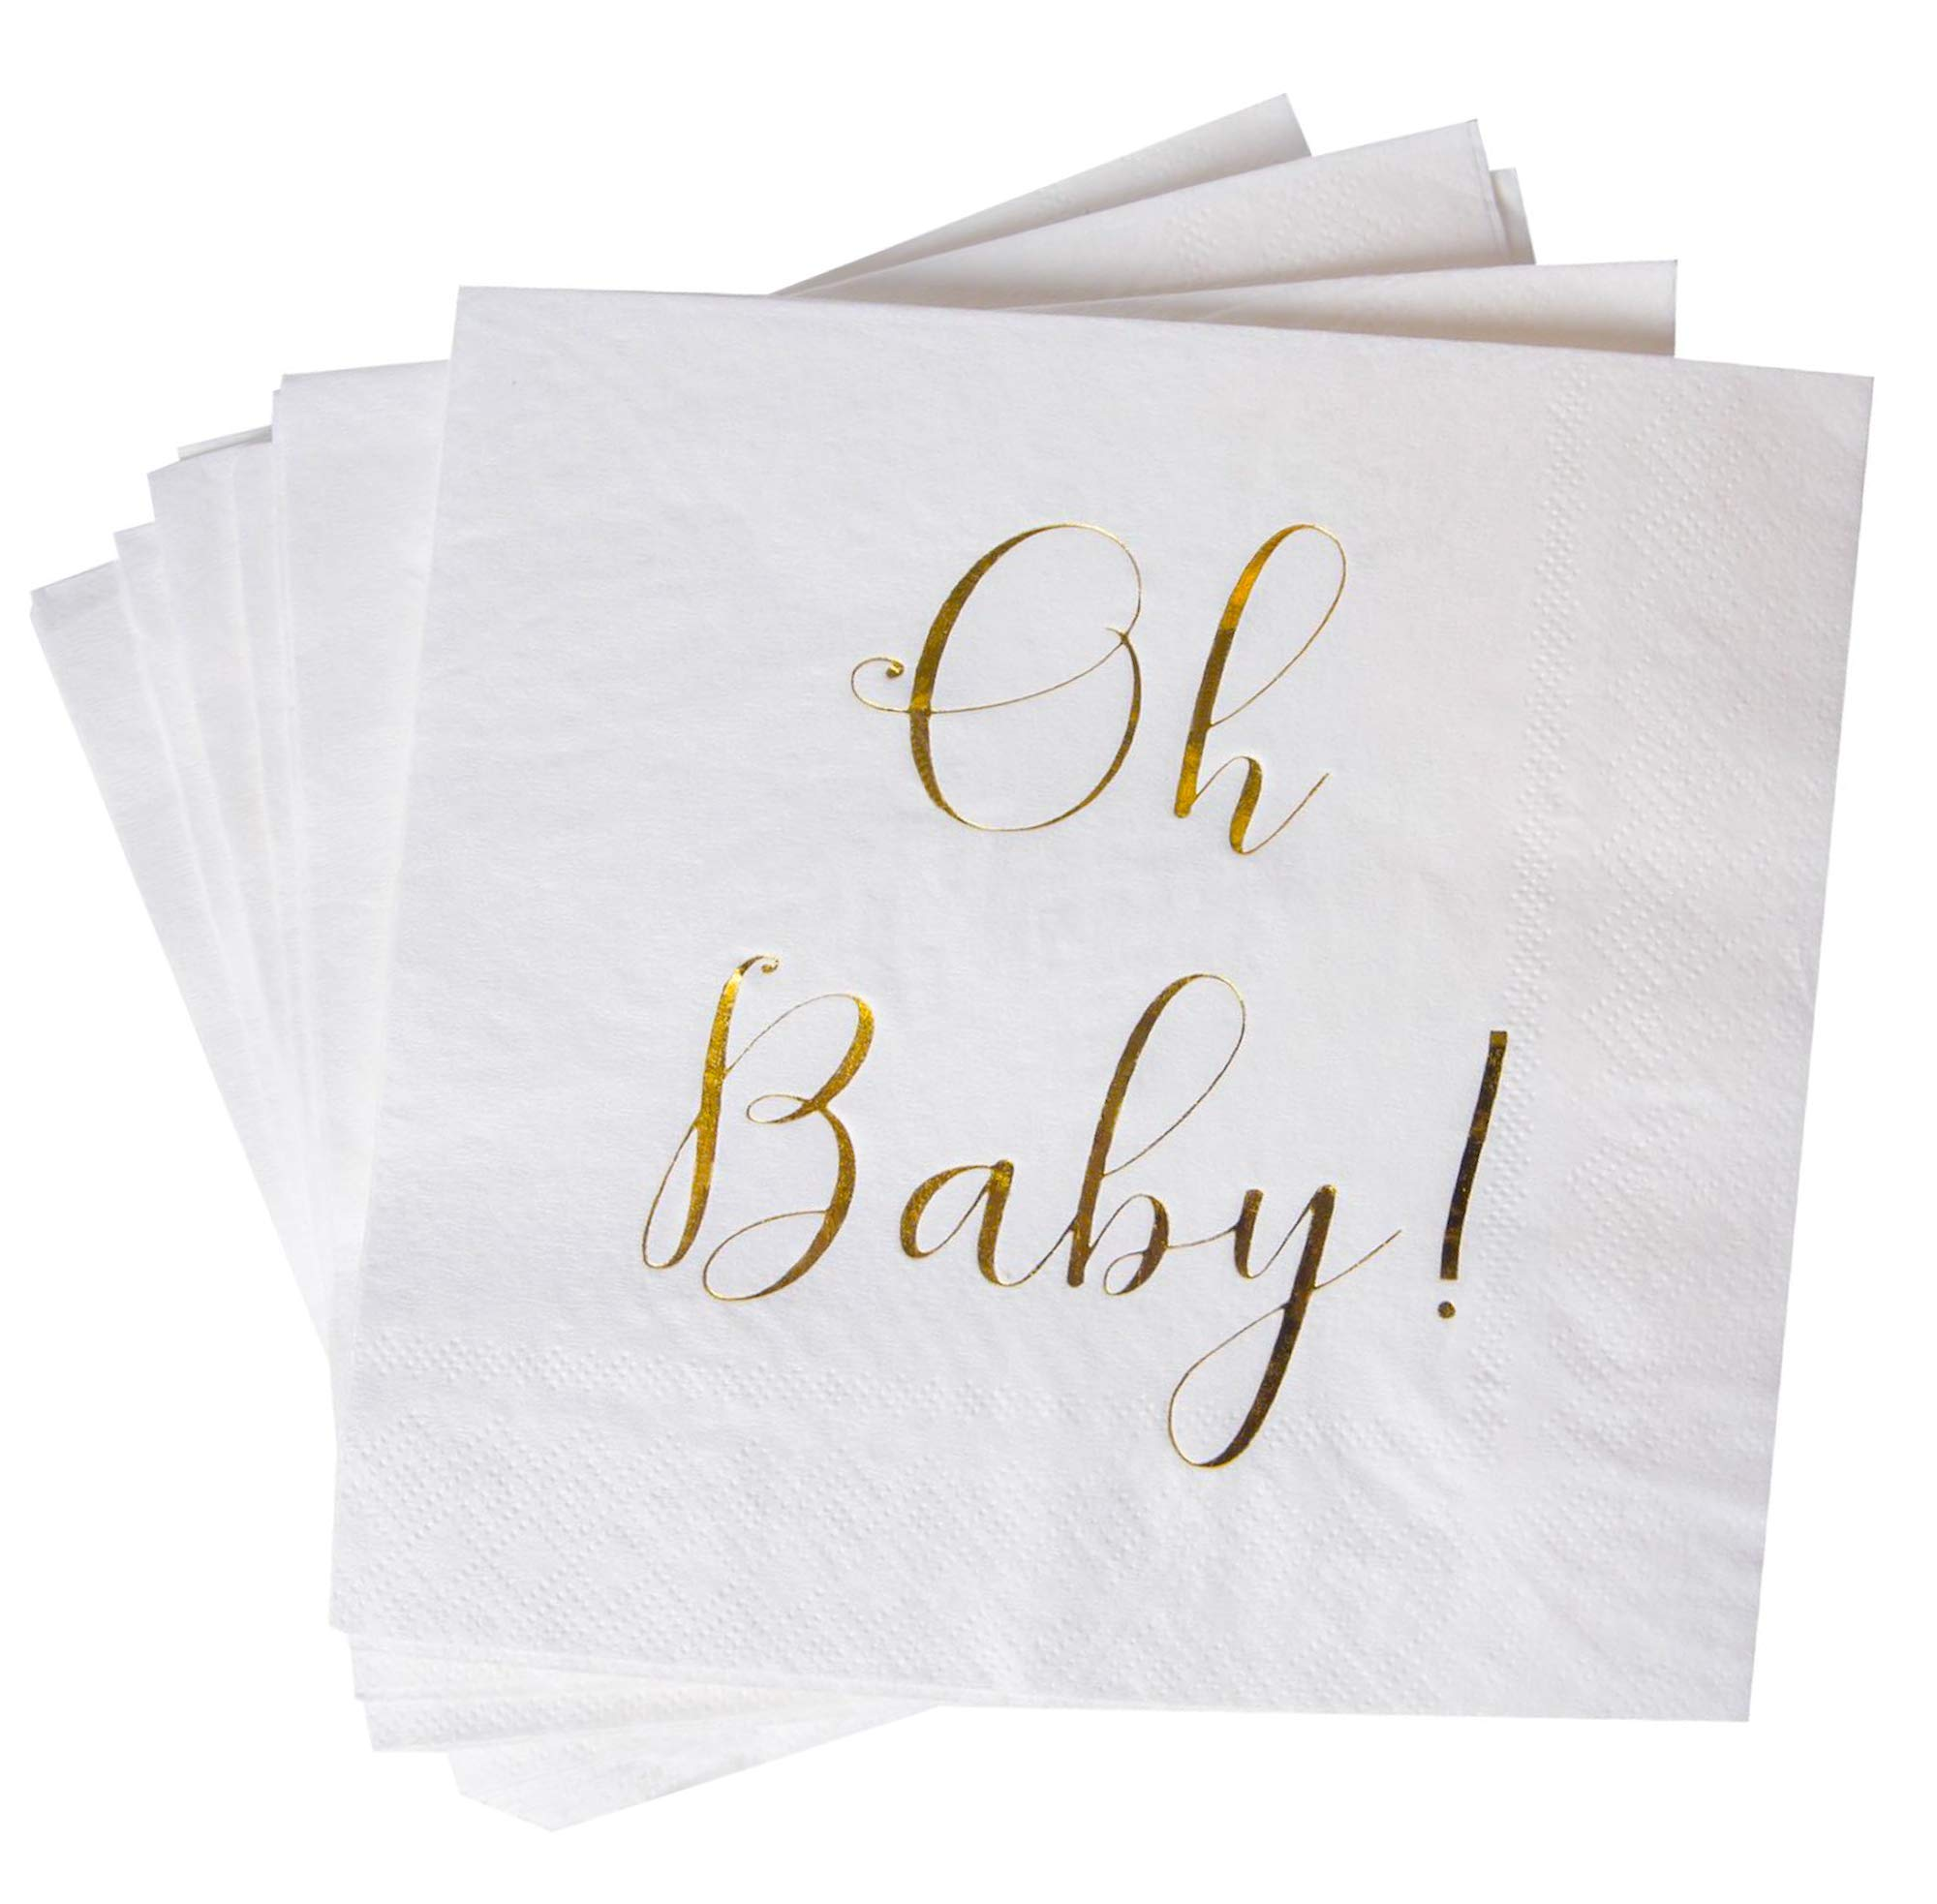 """Baby Shower Napkins - 100 Pack White Disposable Paper Cocktail Napkins with Gold Foil""""Oh Baby!"""" Folded 6.5""""x6.5"""" for Baby Shower Party"""